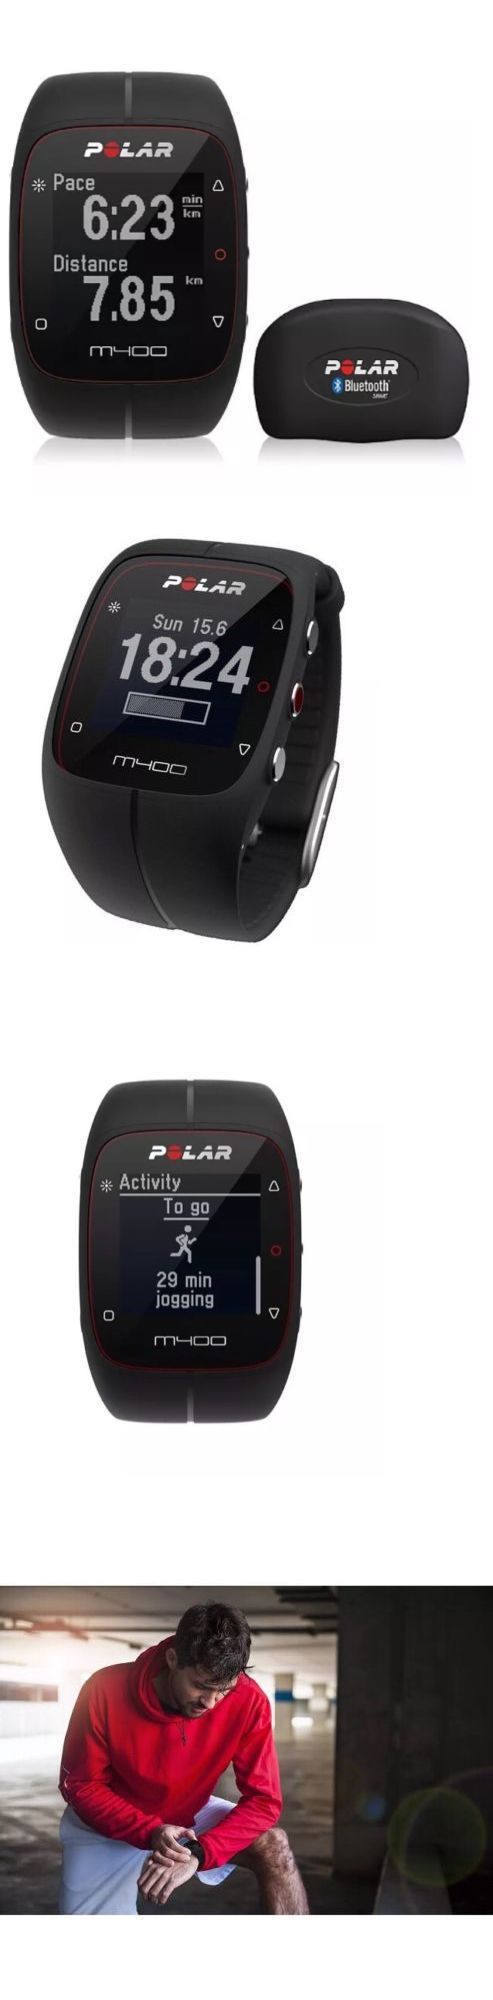 Other Fitness Equipment and Gear 28065: Polar M400 Fitness Watch For Running With Gps And Hrm - Black -> BUY IT NOW ONLY: $149.99 on eBay!